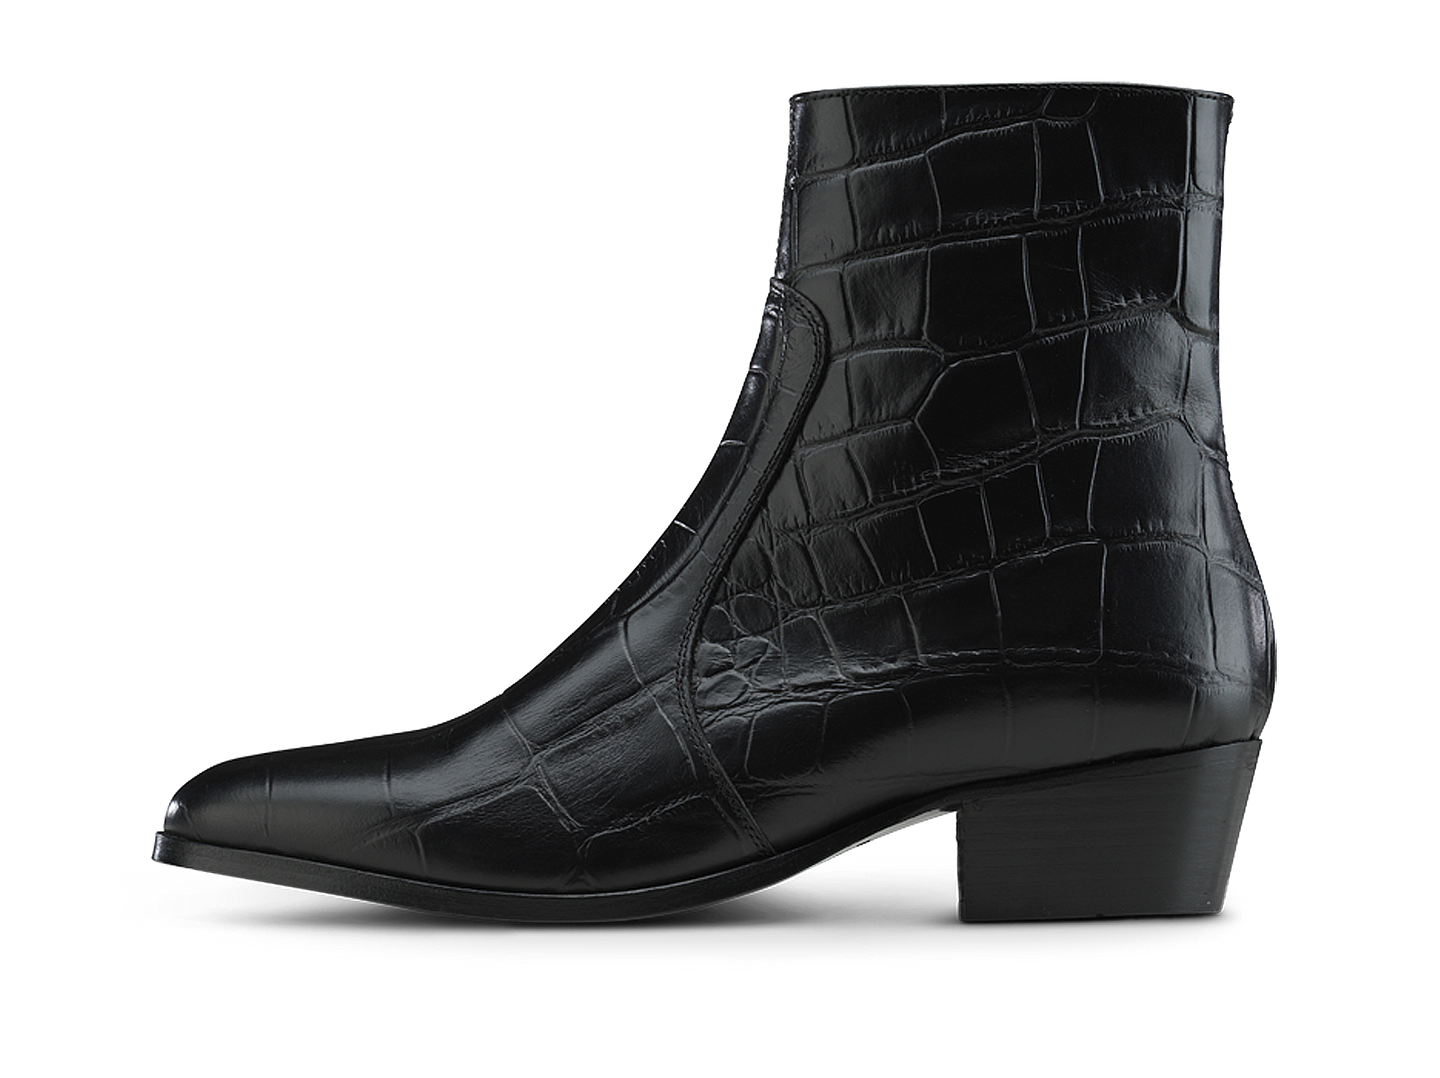 Zimmerman Zip Boot - Black Croco - Everyday Hero